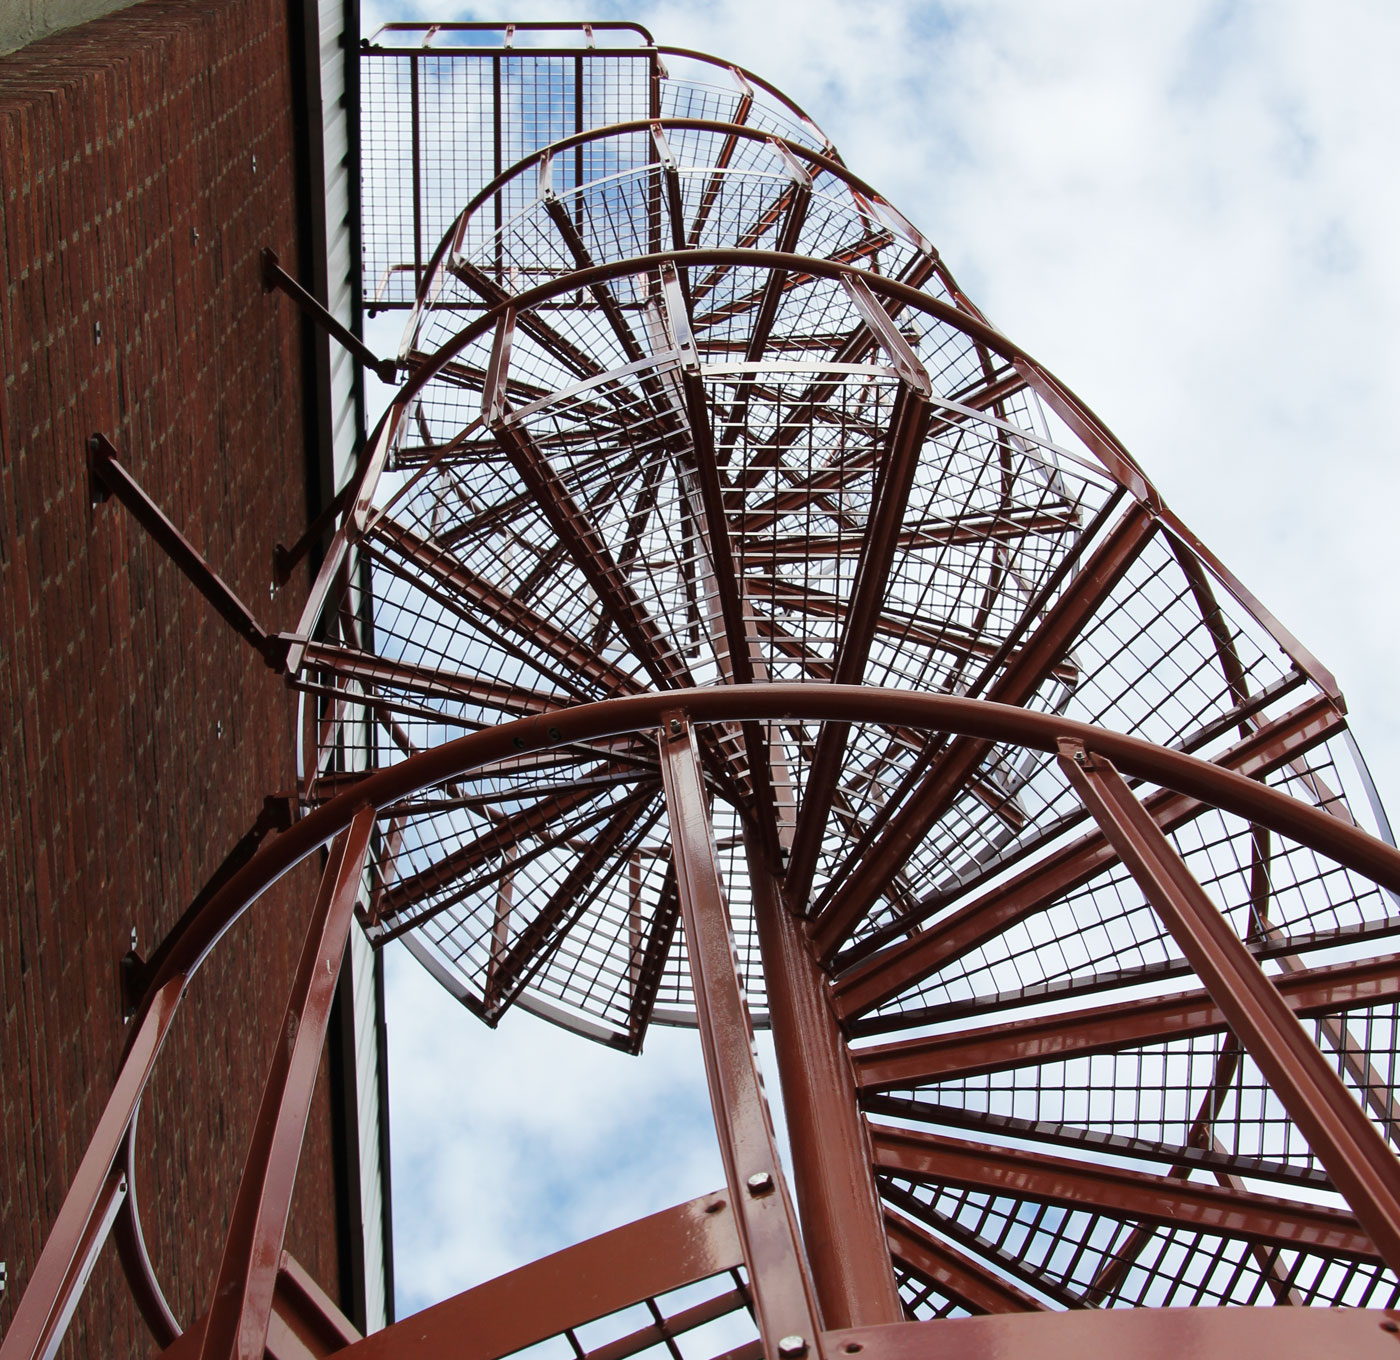 Powder coated outdoor spiral staircase with industrial railing